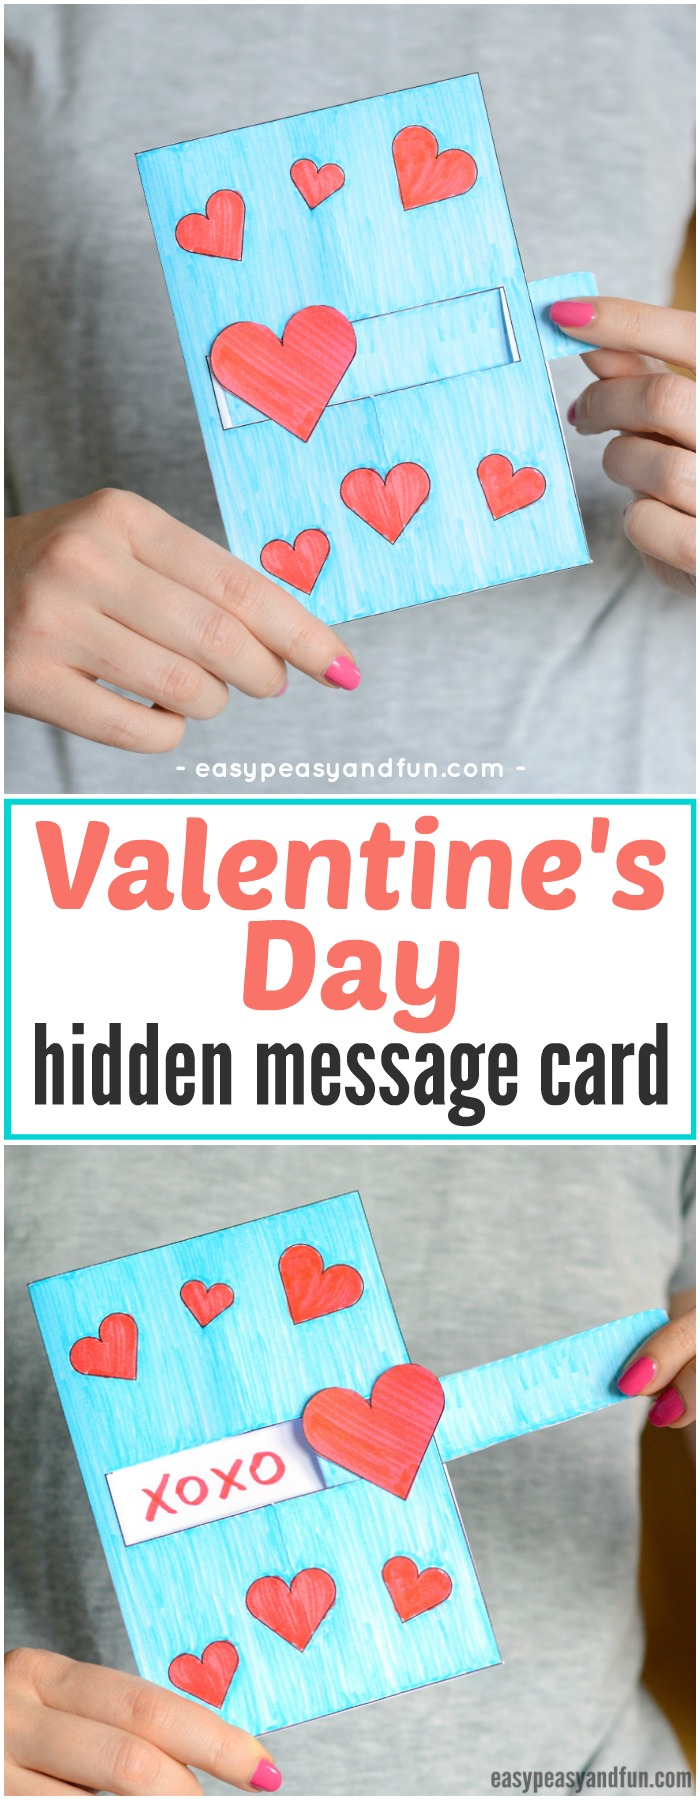 Hidden Message Valentine's Day Card Idea for Kids. Super fun paper craft for kids to make for Valentine's day. #Valentinesdaycrafts #papercraftsforkids #DIYcardideaforkids